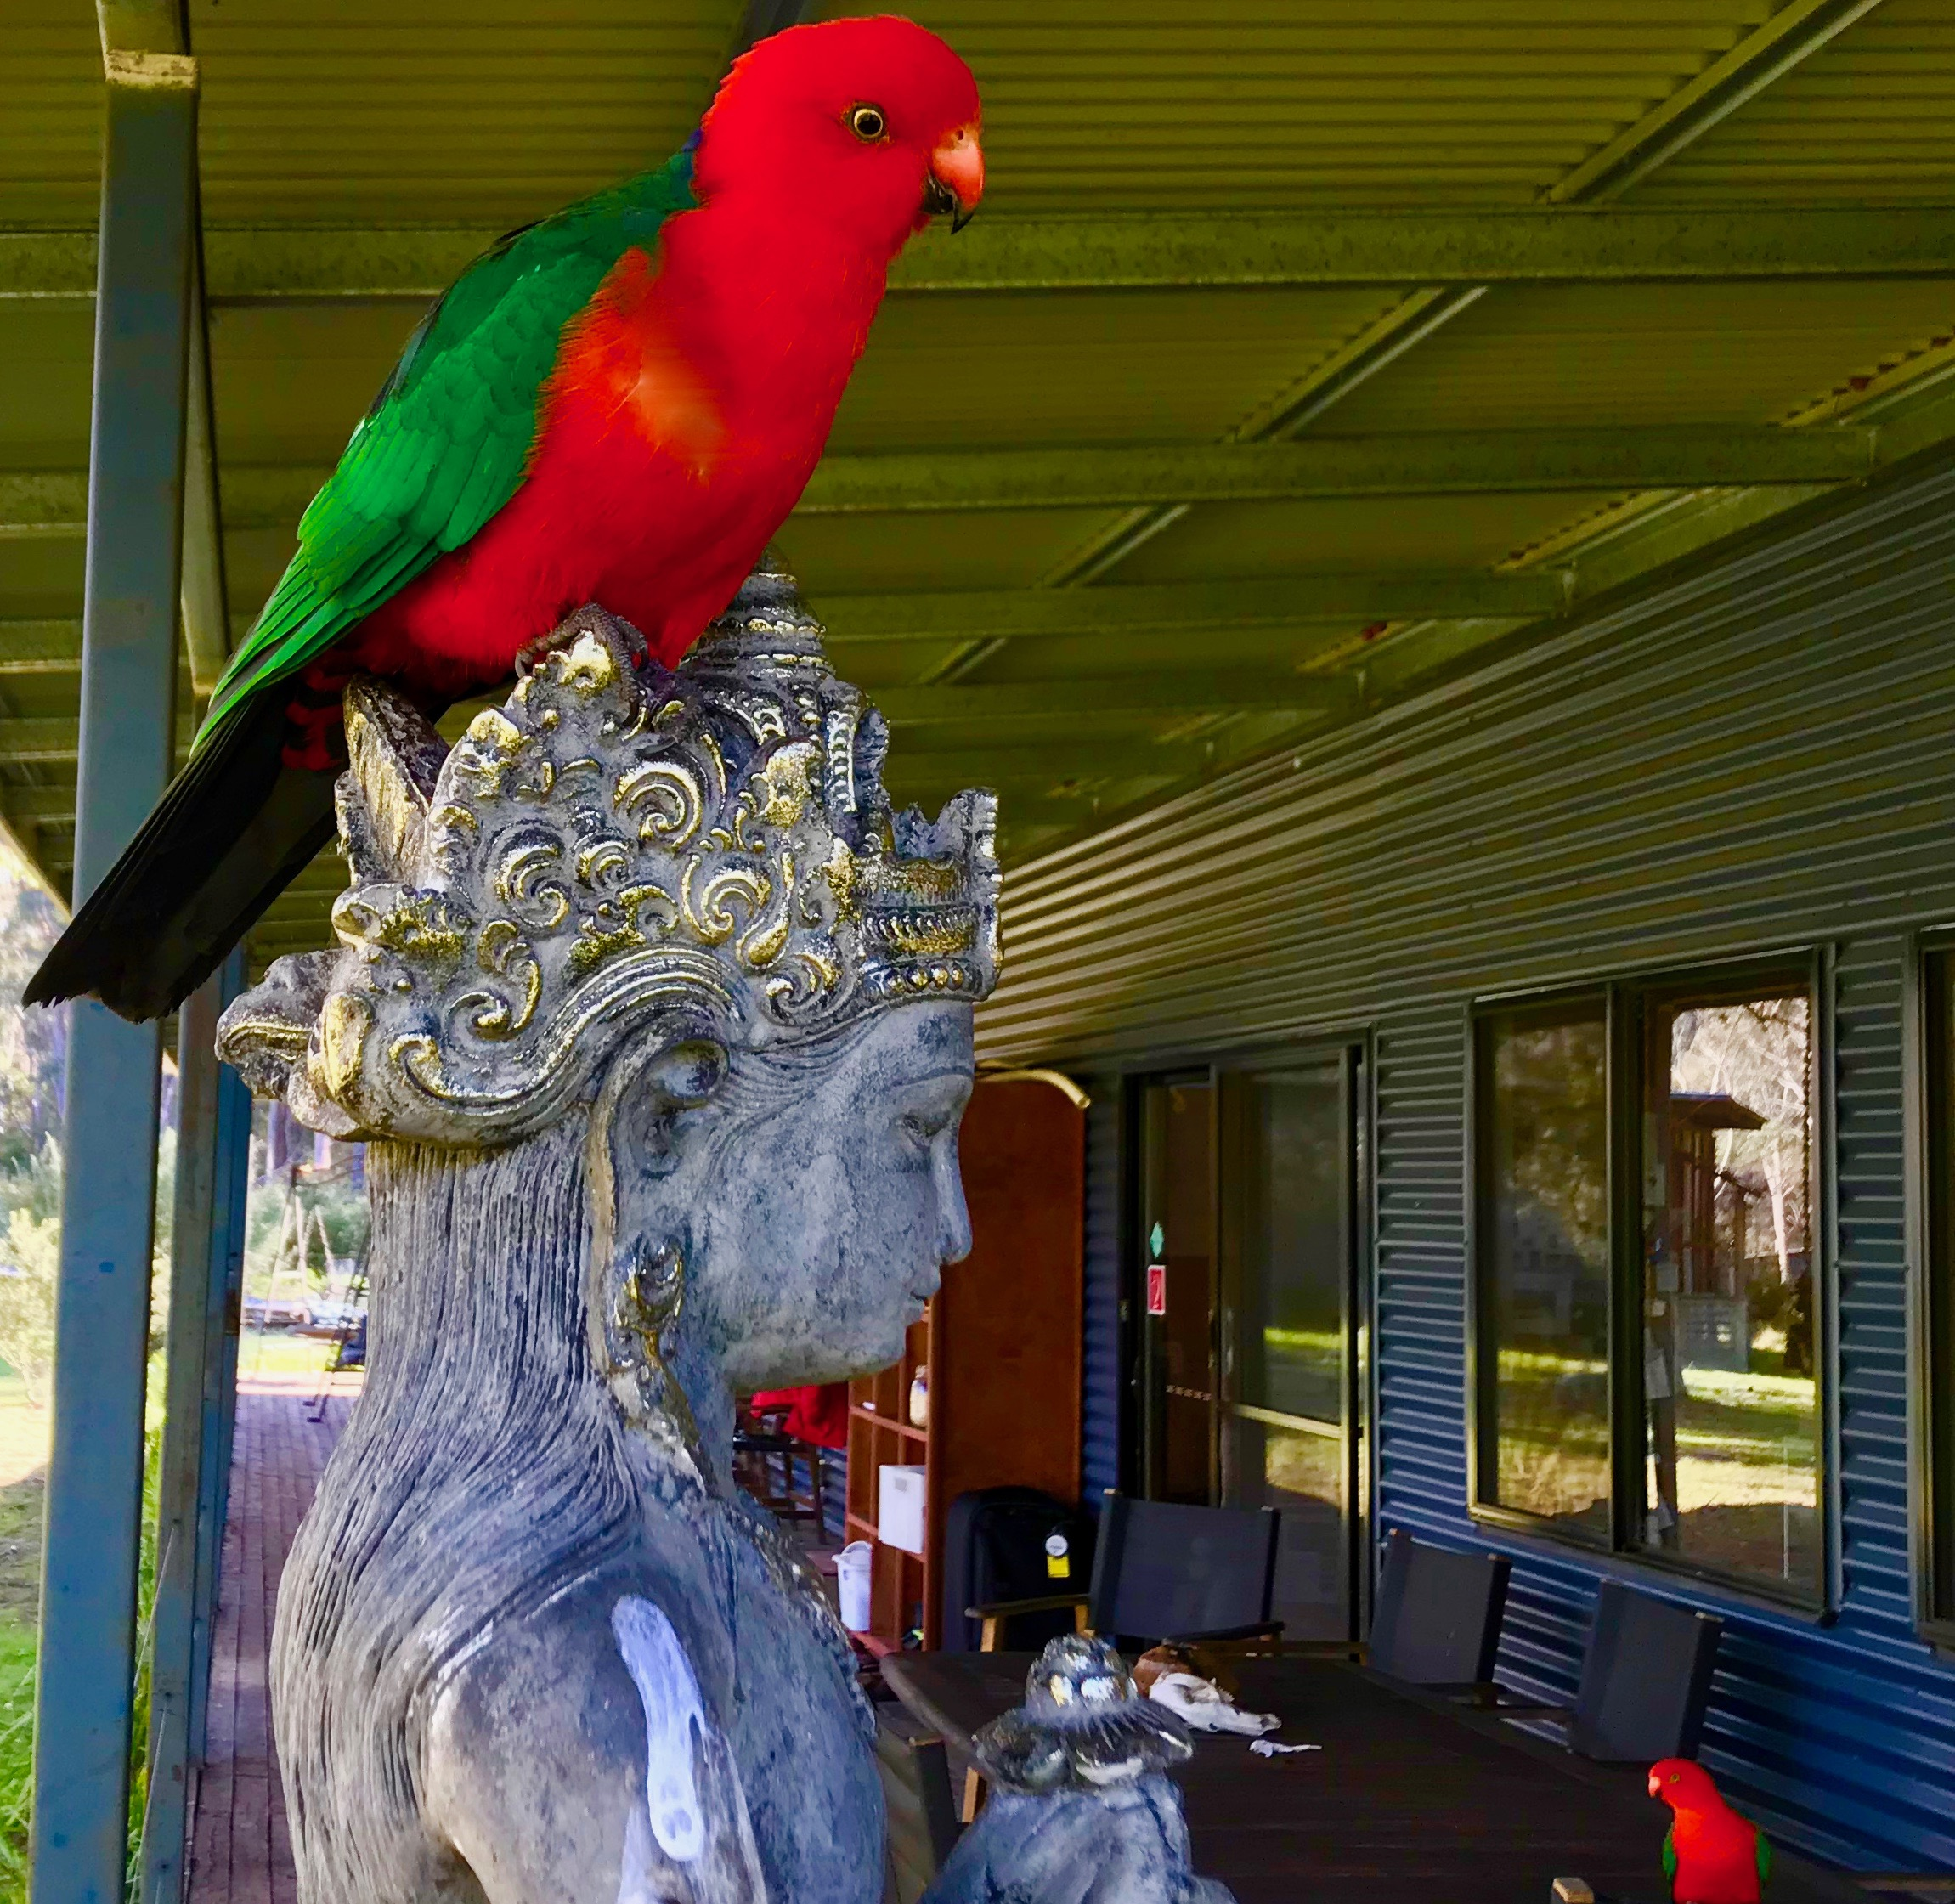 In the early morning Eastern Rosellas come to call...